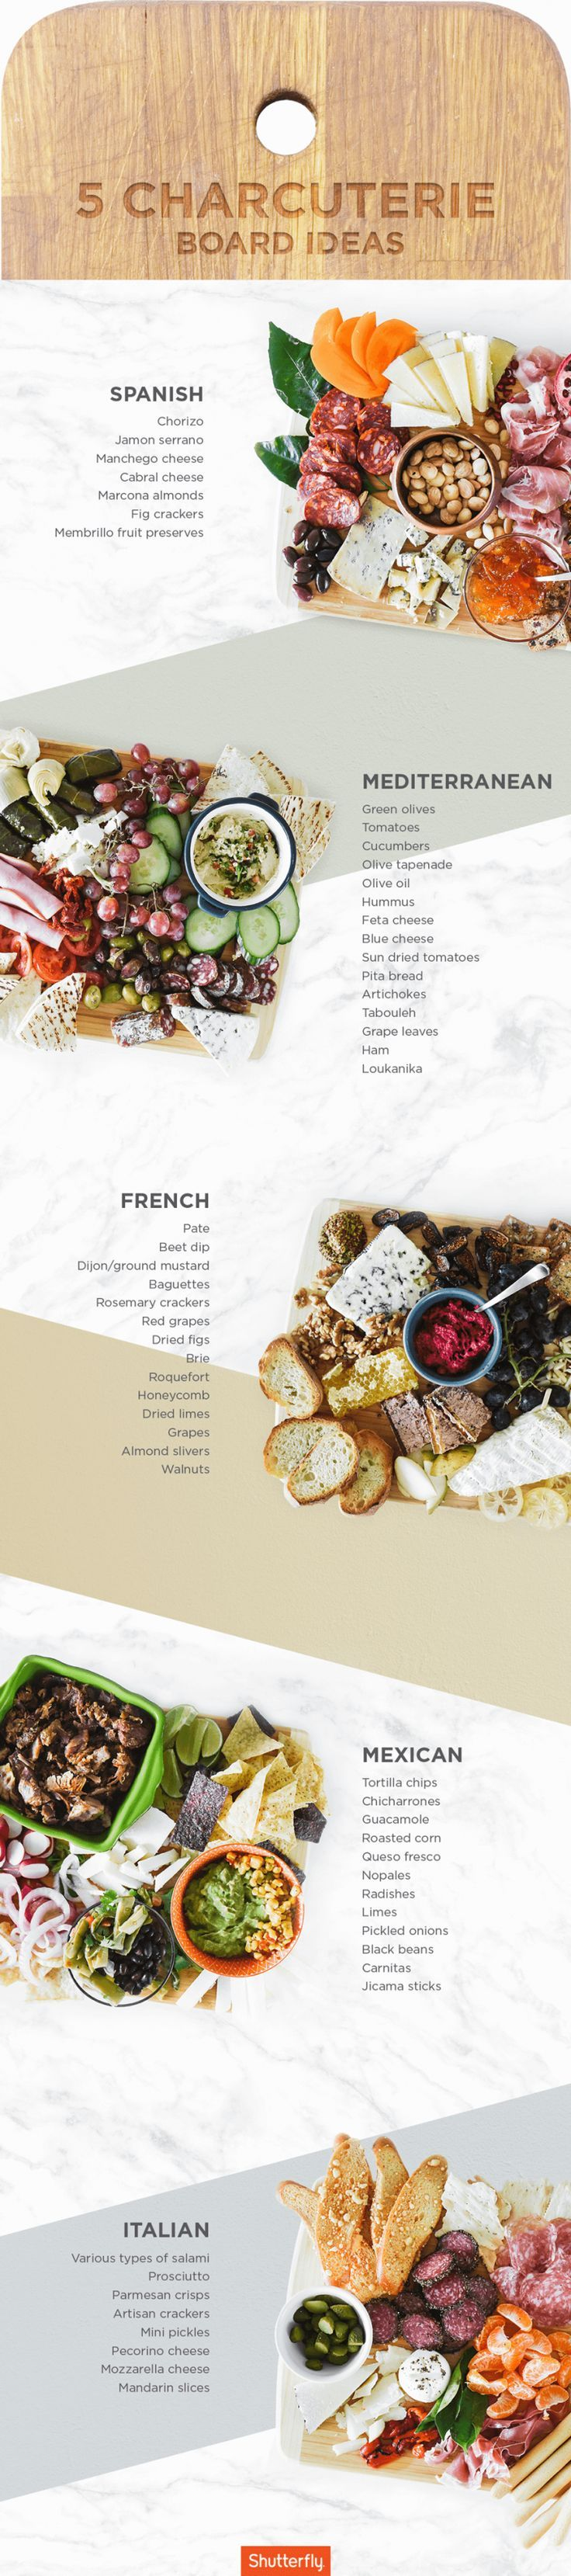 Build A Charcuterie Board 5 Ways | Shutterfly